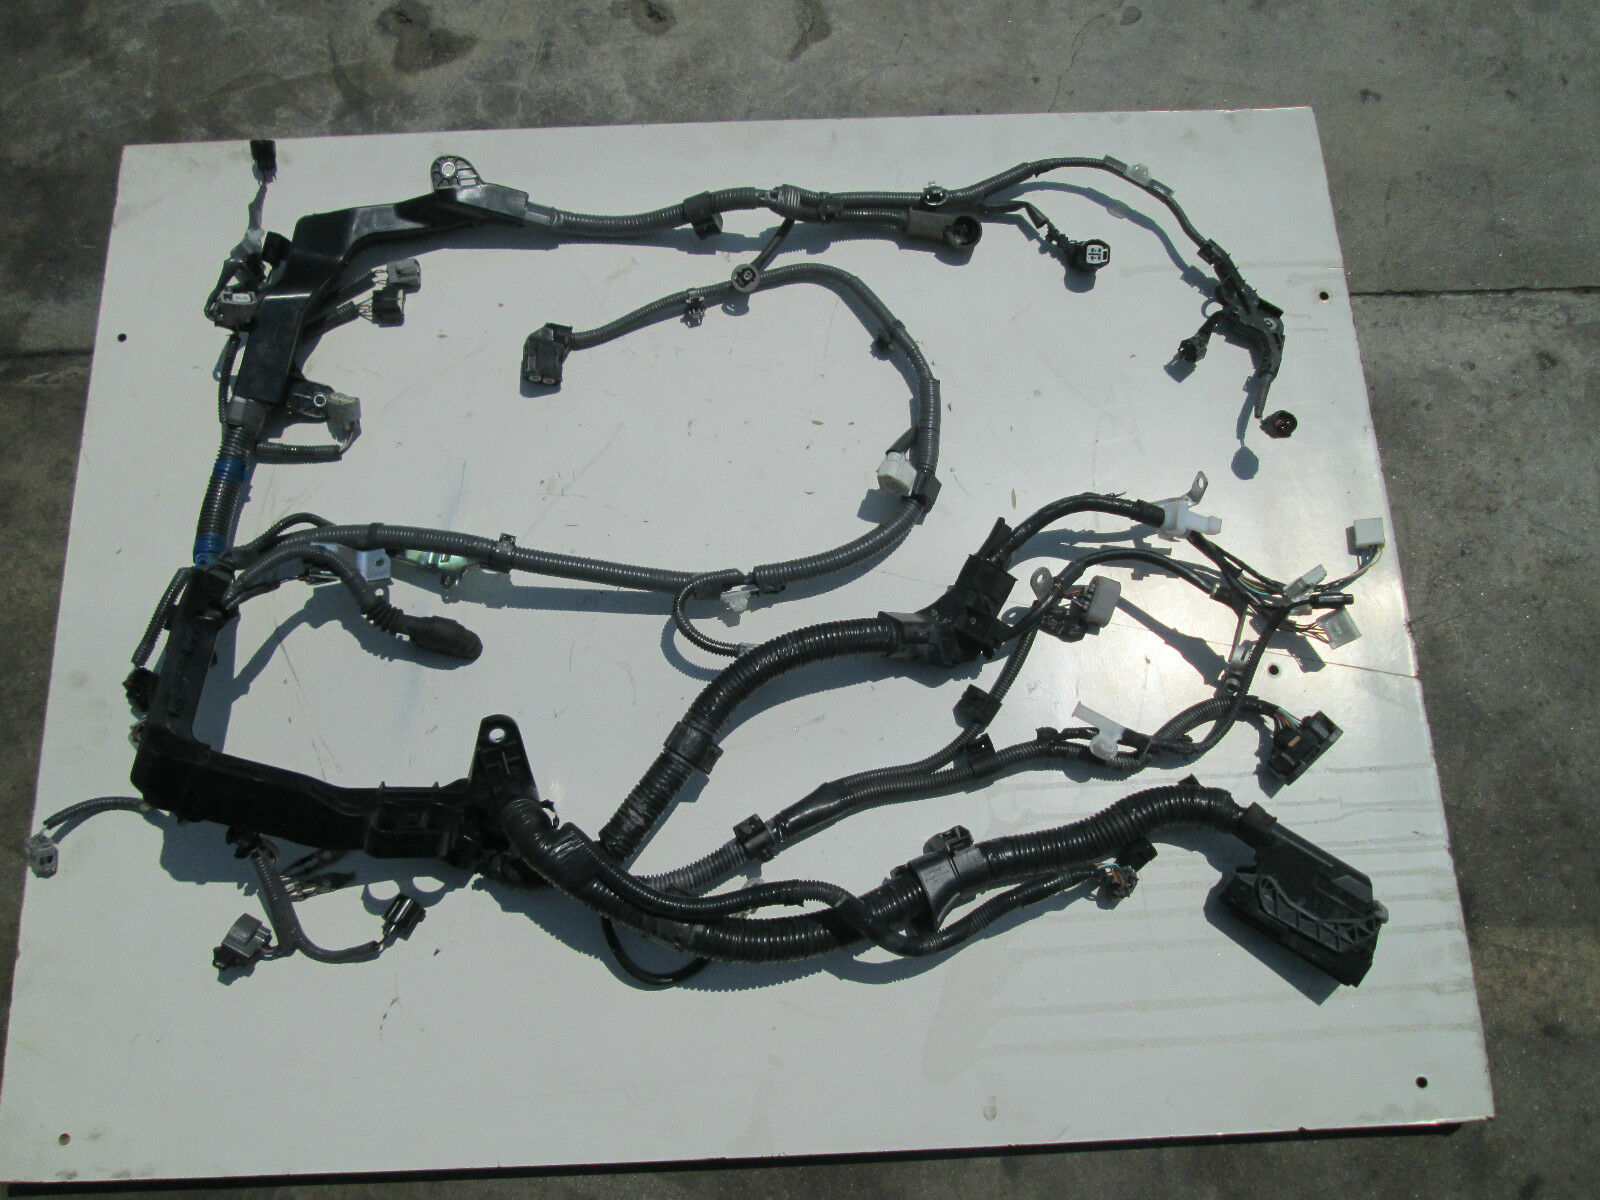 2012 2013 toyota camry engine wire harness pictures toyota nation rh toyotanation com 2000 toyota camry wiring harness 2000 toyota camry wiring harness